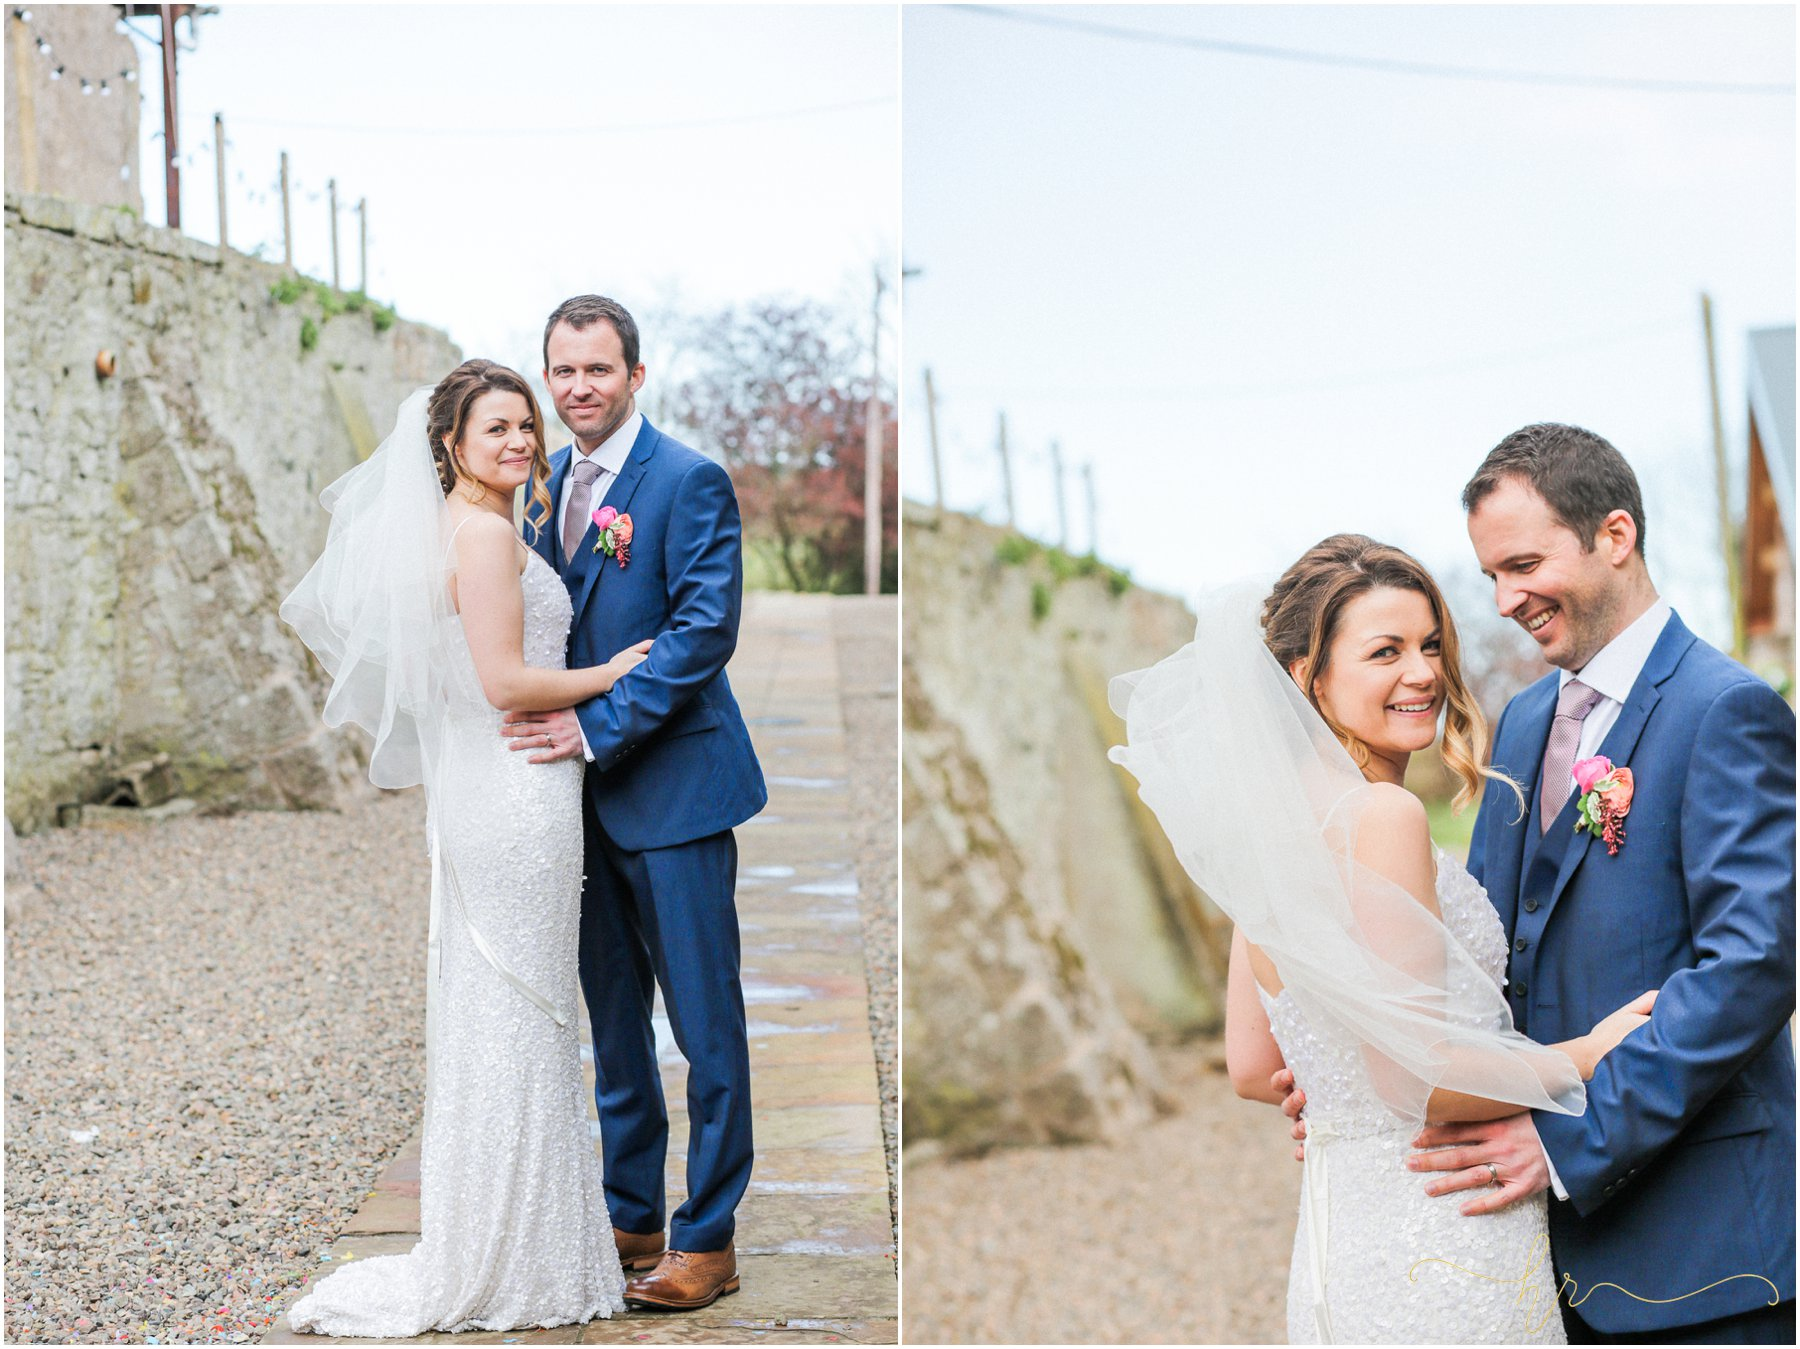 Doxford-Barn-Wedding-Photography_0268